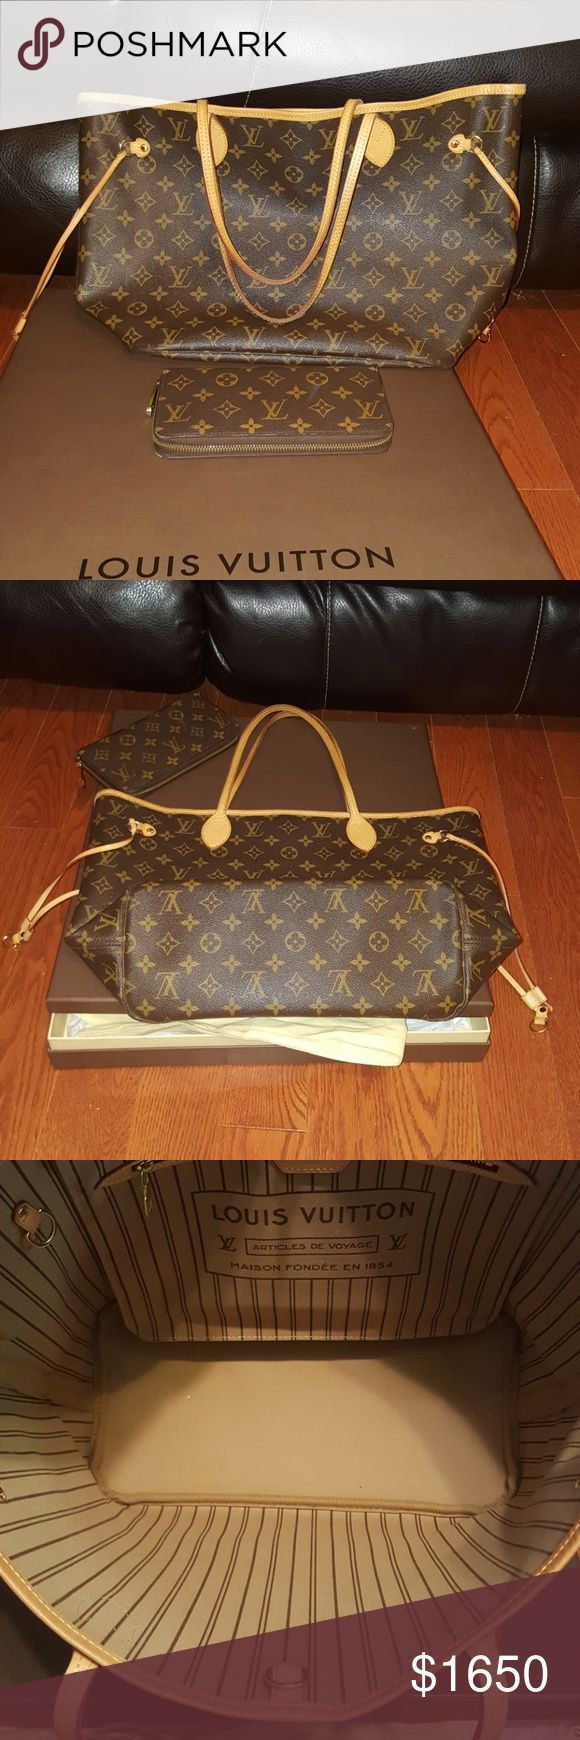 Authantic Louis Vuitton Neverfull MM/Zippy In excellent condition NF MM and ZIPPY WALLET  -12.6x 11.4x 6.7 inches (Lengthx Heightx Width) - Redesigned interior with Louis Vuitton archive details - Textile-lined inside pocket - Natural cowhide leather trim - Golden color metallic pieces (no wristlet in use)  Zippy Monogram wallet  Retail price 805 NF MM 1260 plus tax  *PRICE FIRM* POSH AUTHANTICATE Louis Vuitton Bags Totes